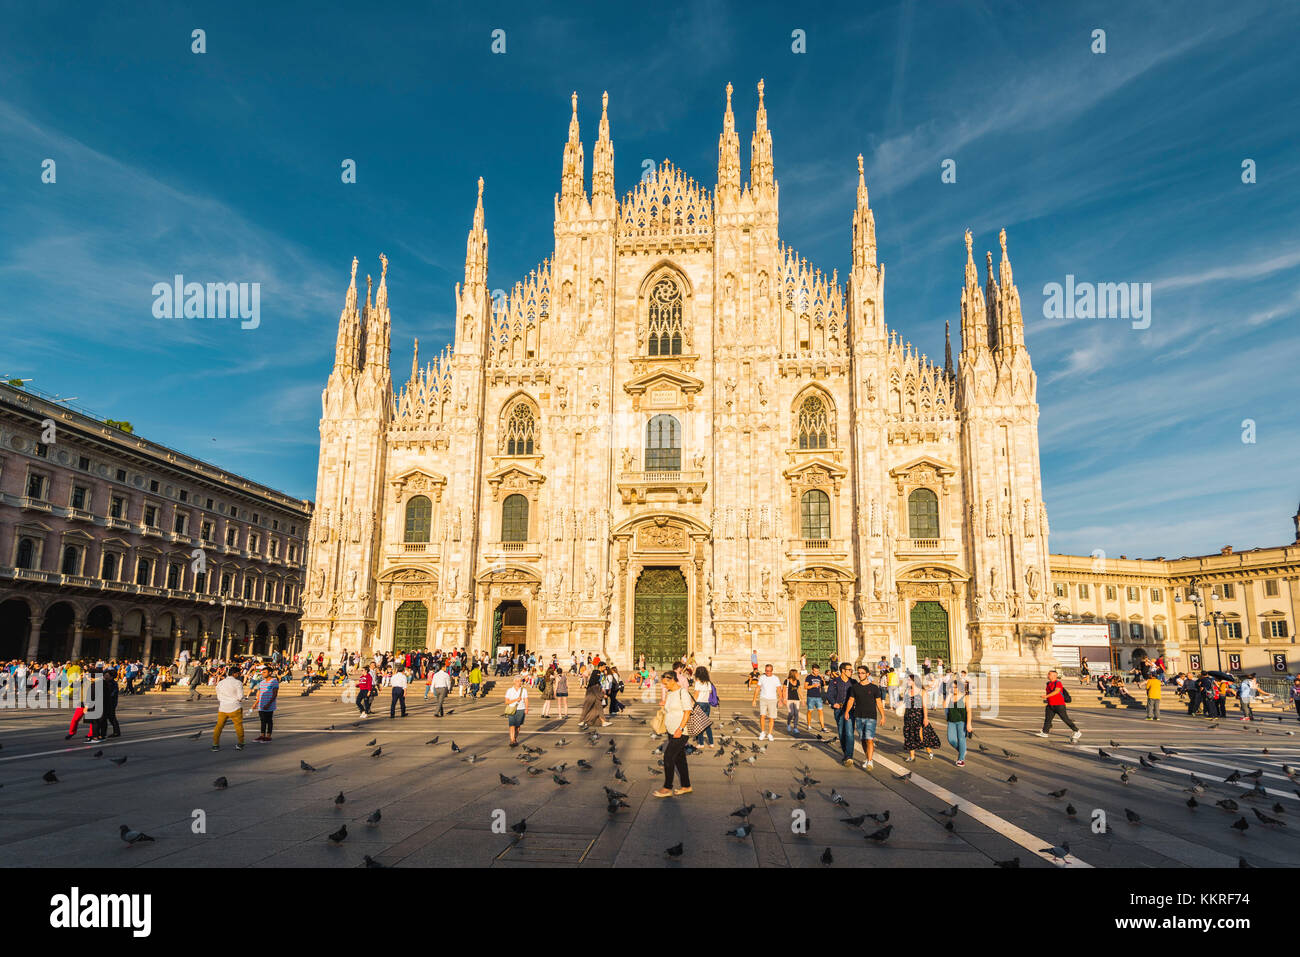 Milan, Lombardy, Italy. The facade of the Milan's Cathedral (Duomo) at sunset. - Stock Image